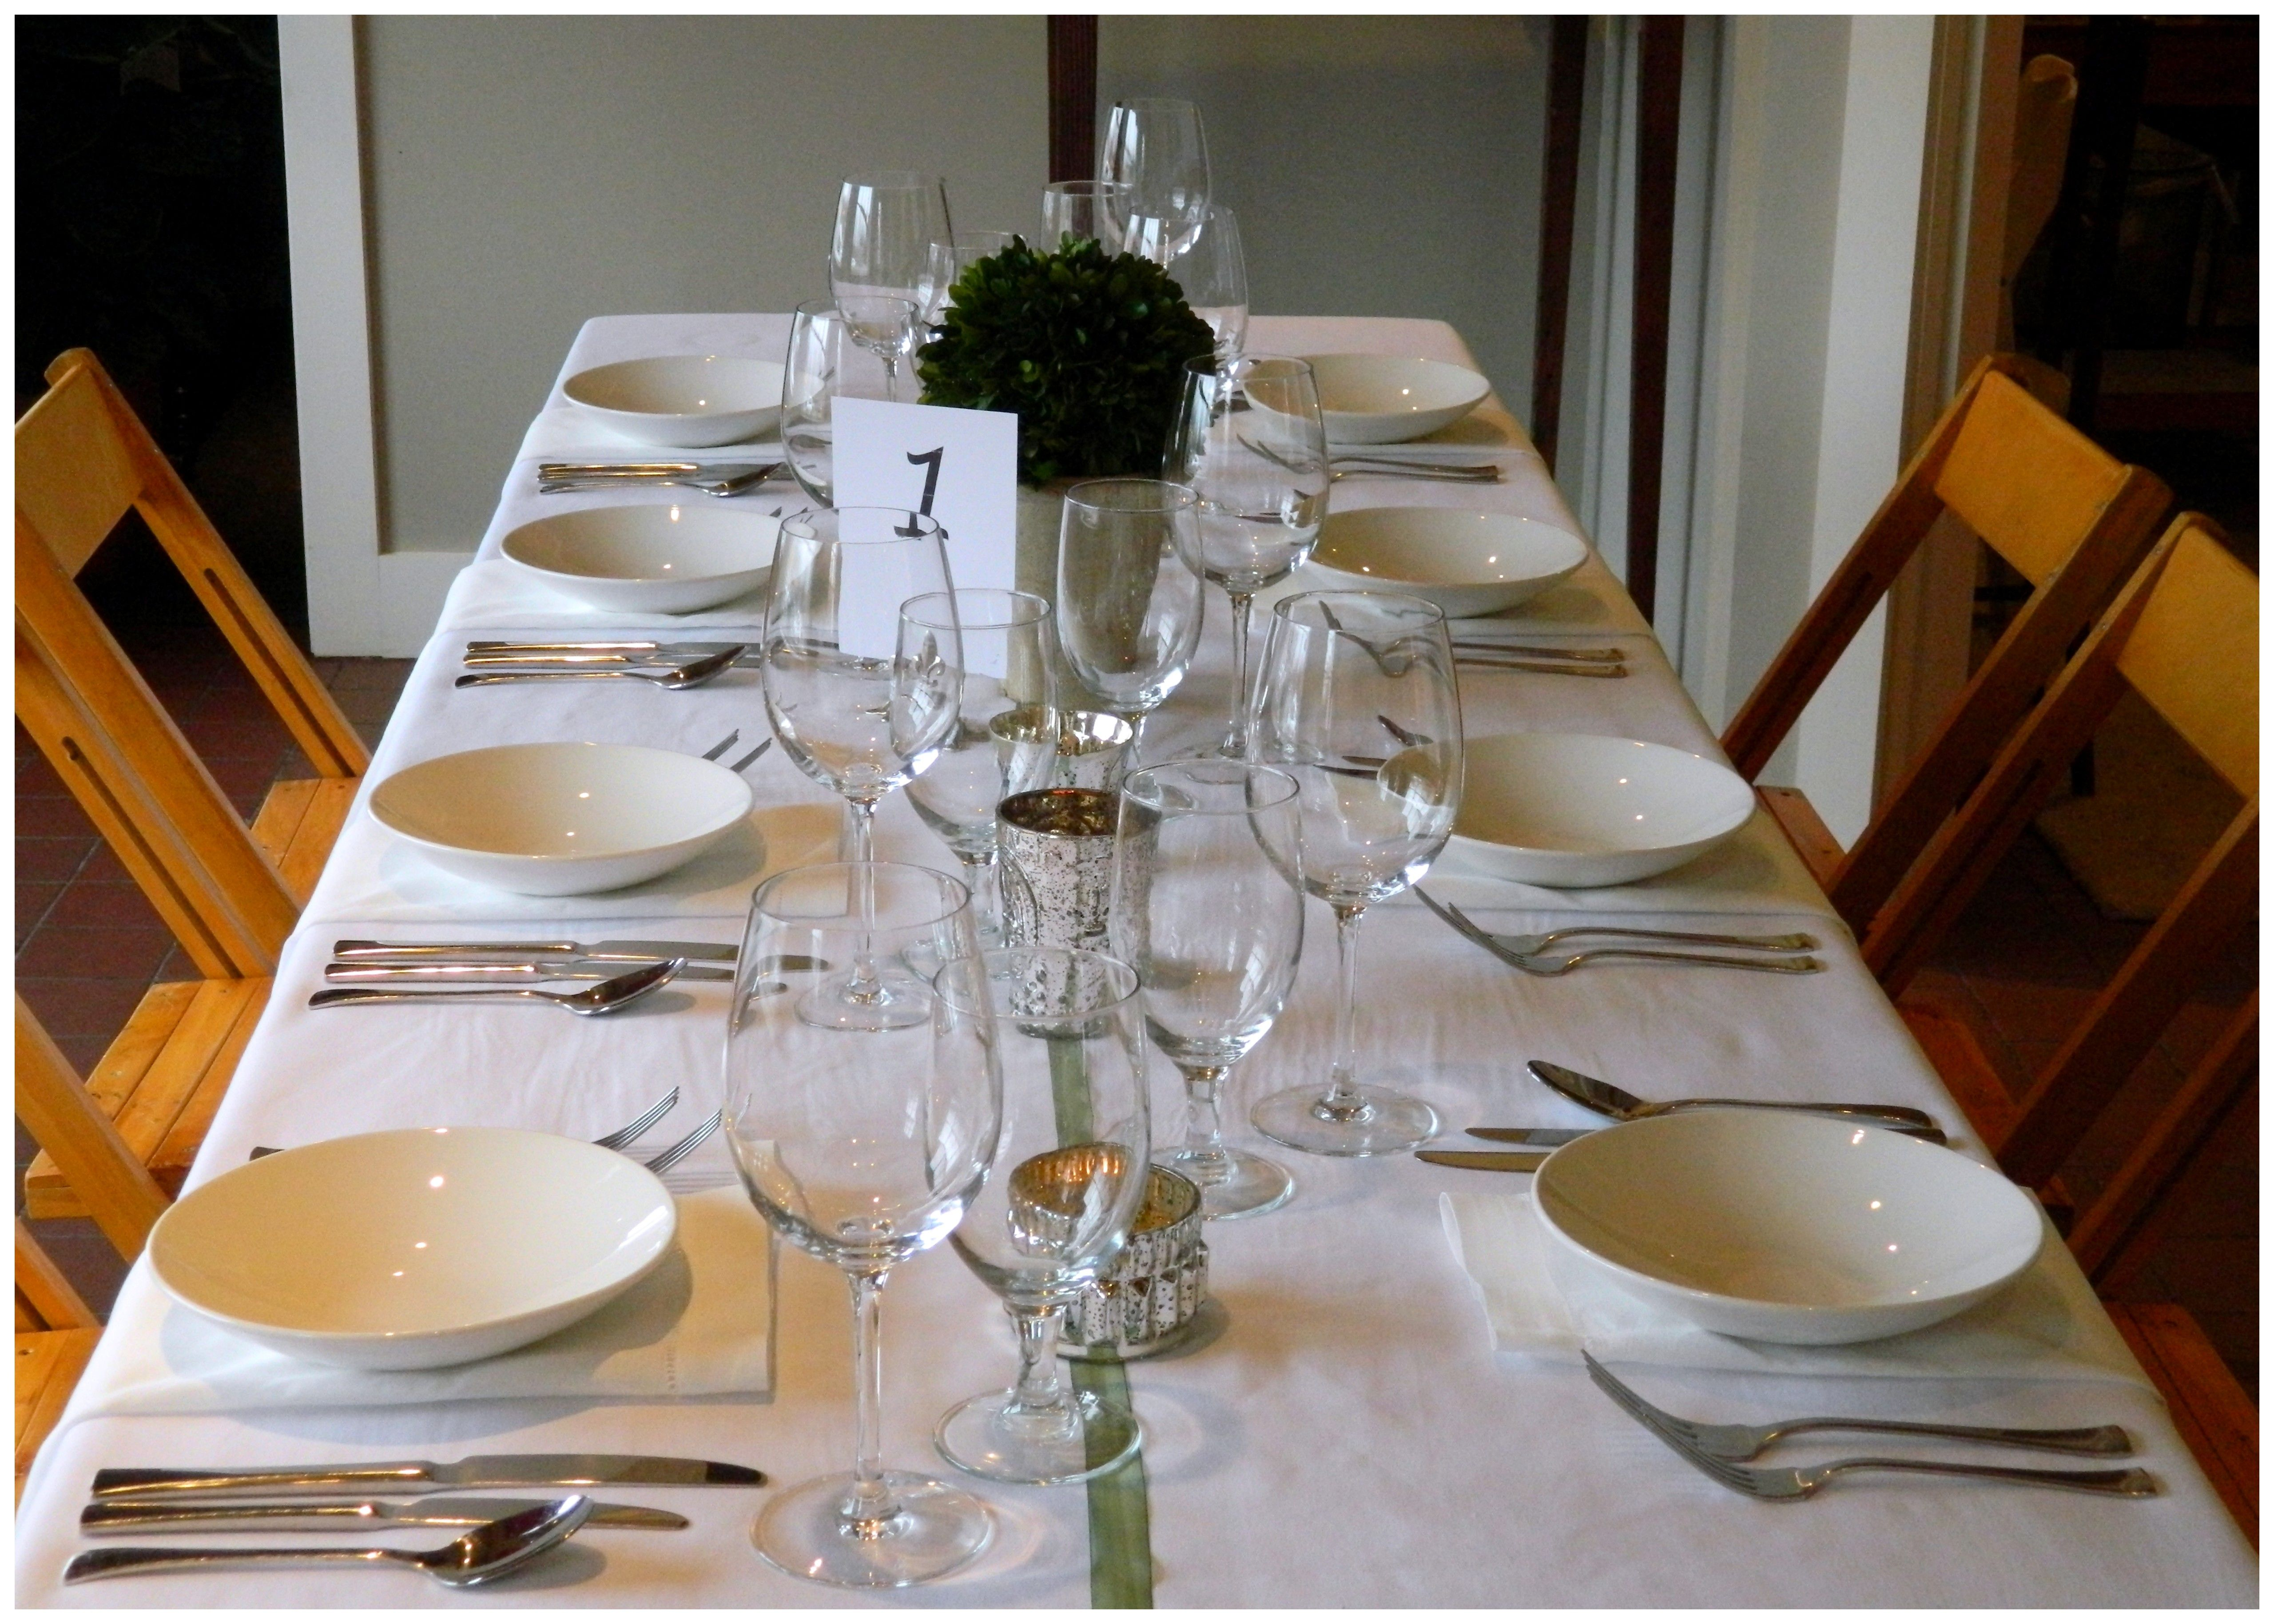 6bb0b782fea2418da32f3bfdfcc9a857.jpg & This set up includes our 8 ft banquet table set for 8 guests white ...